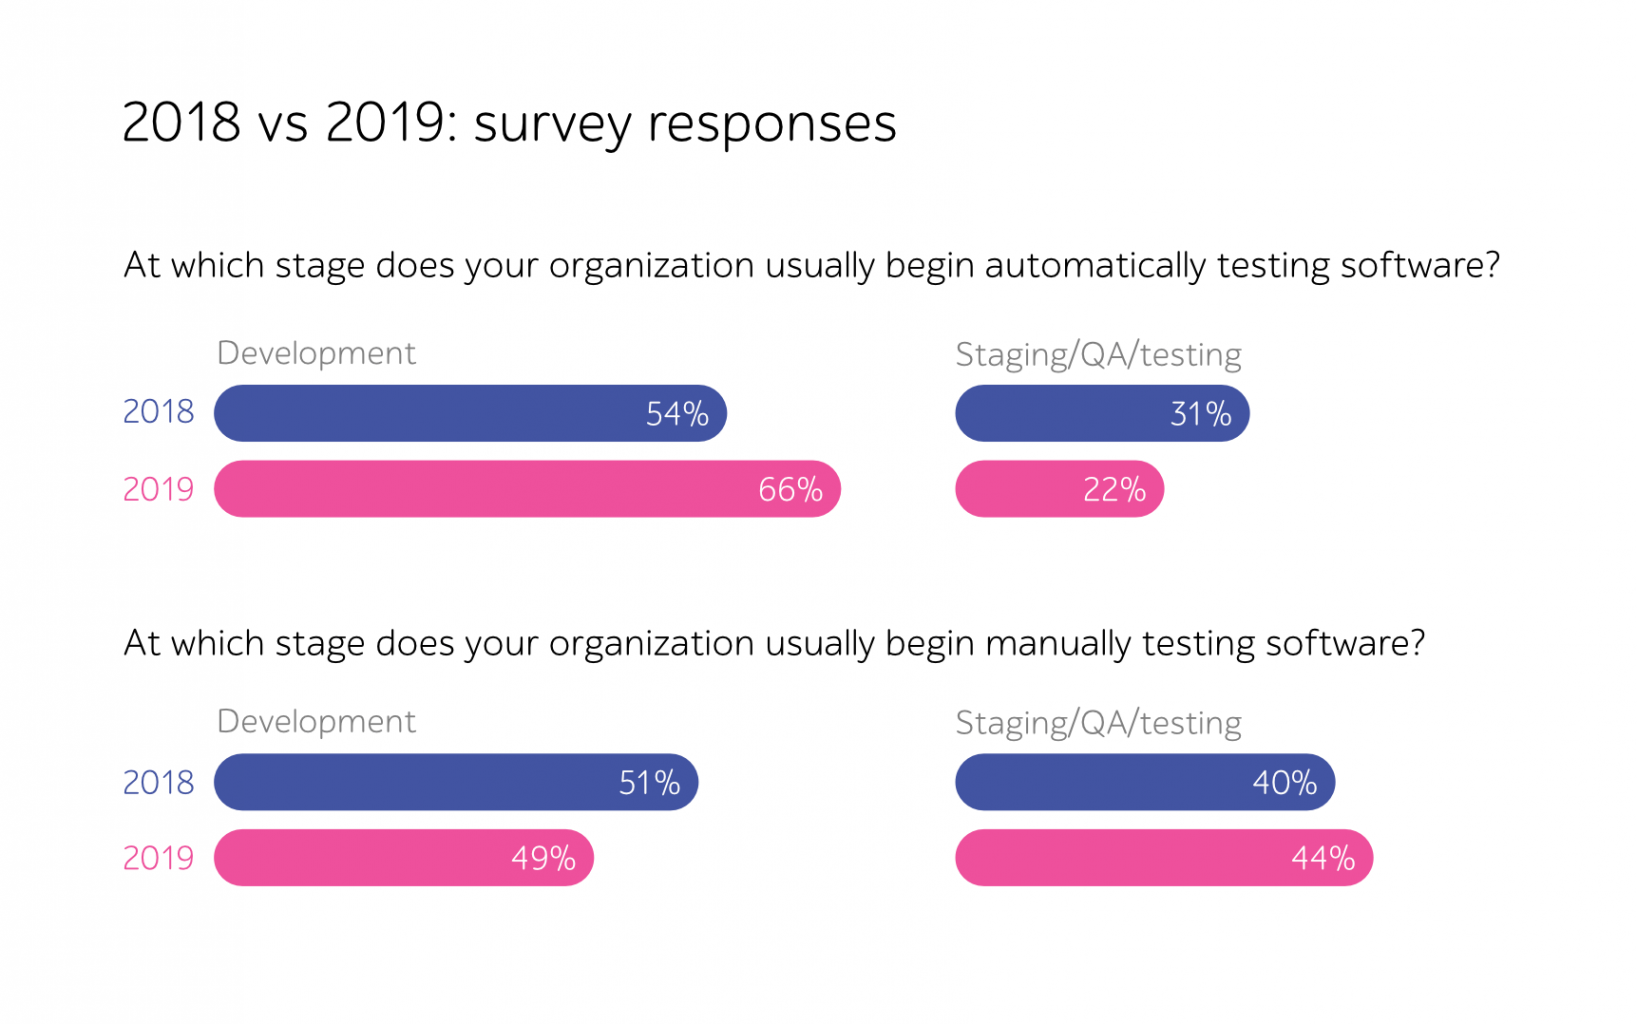 At which stage does your organization usually begin automatically testing software